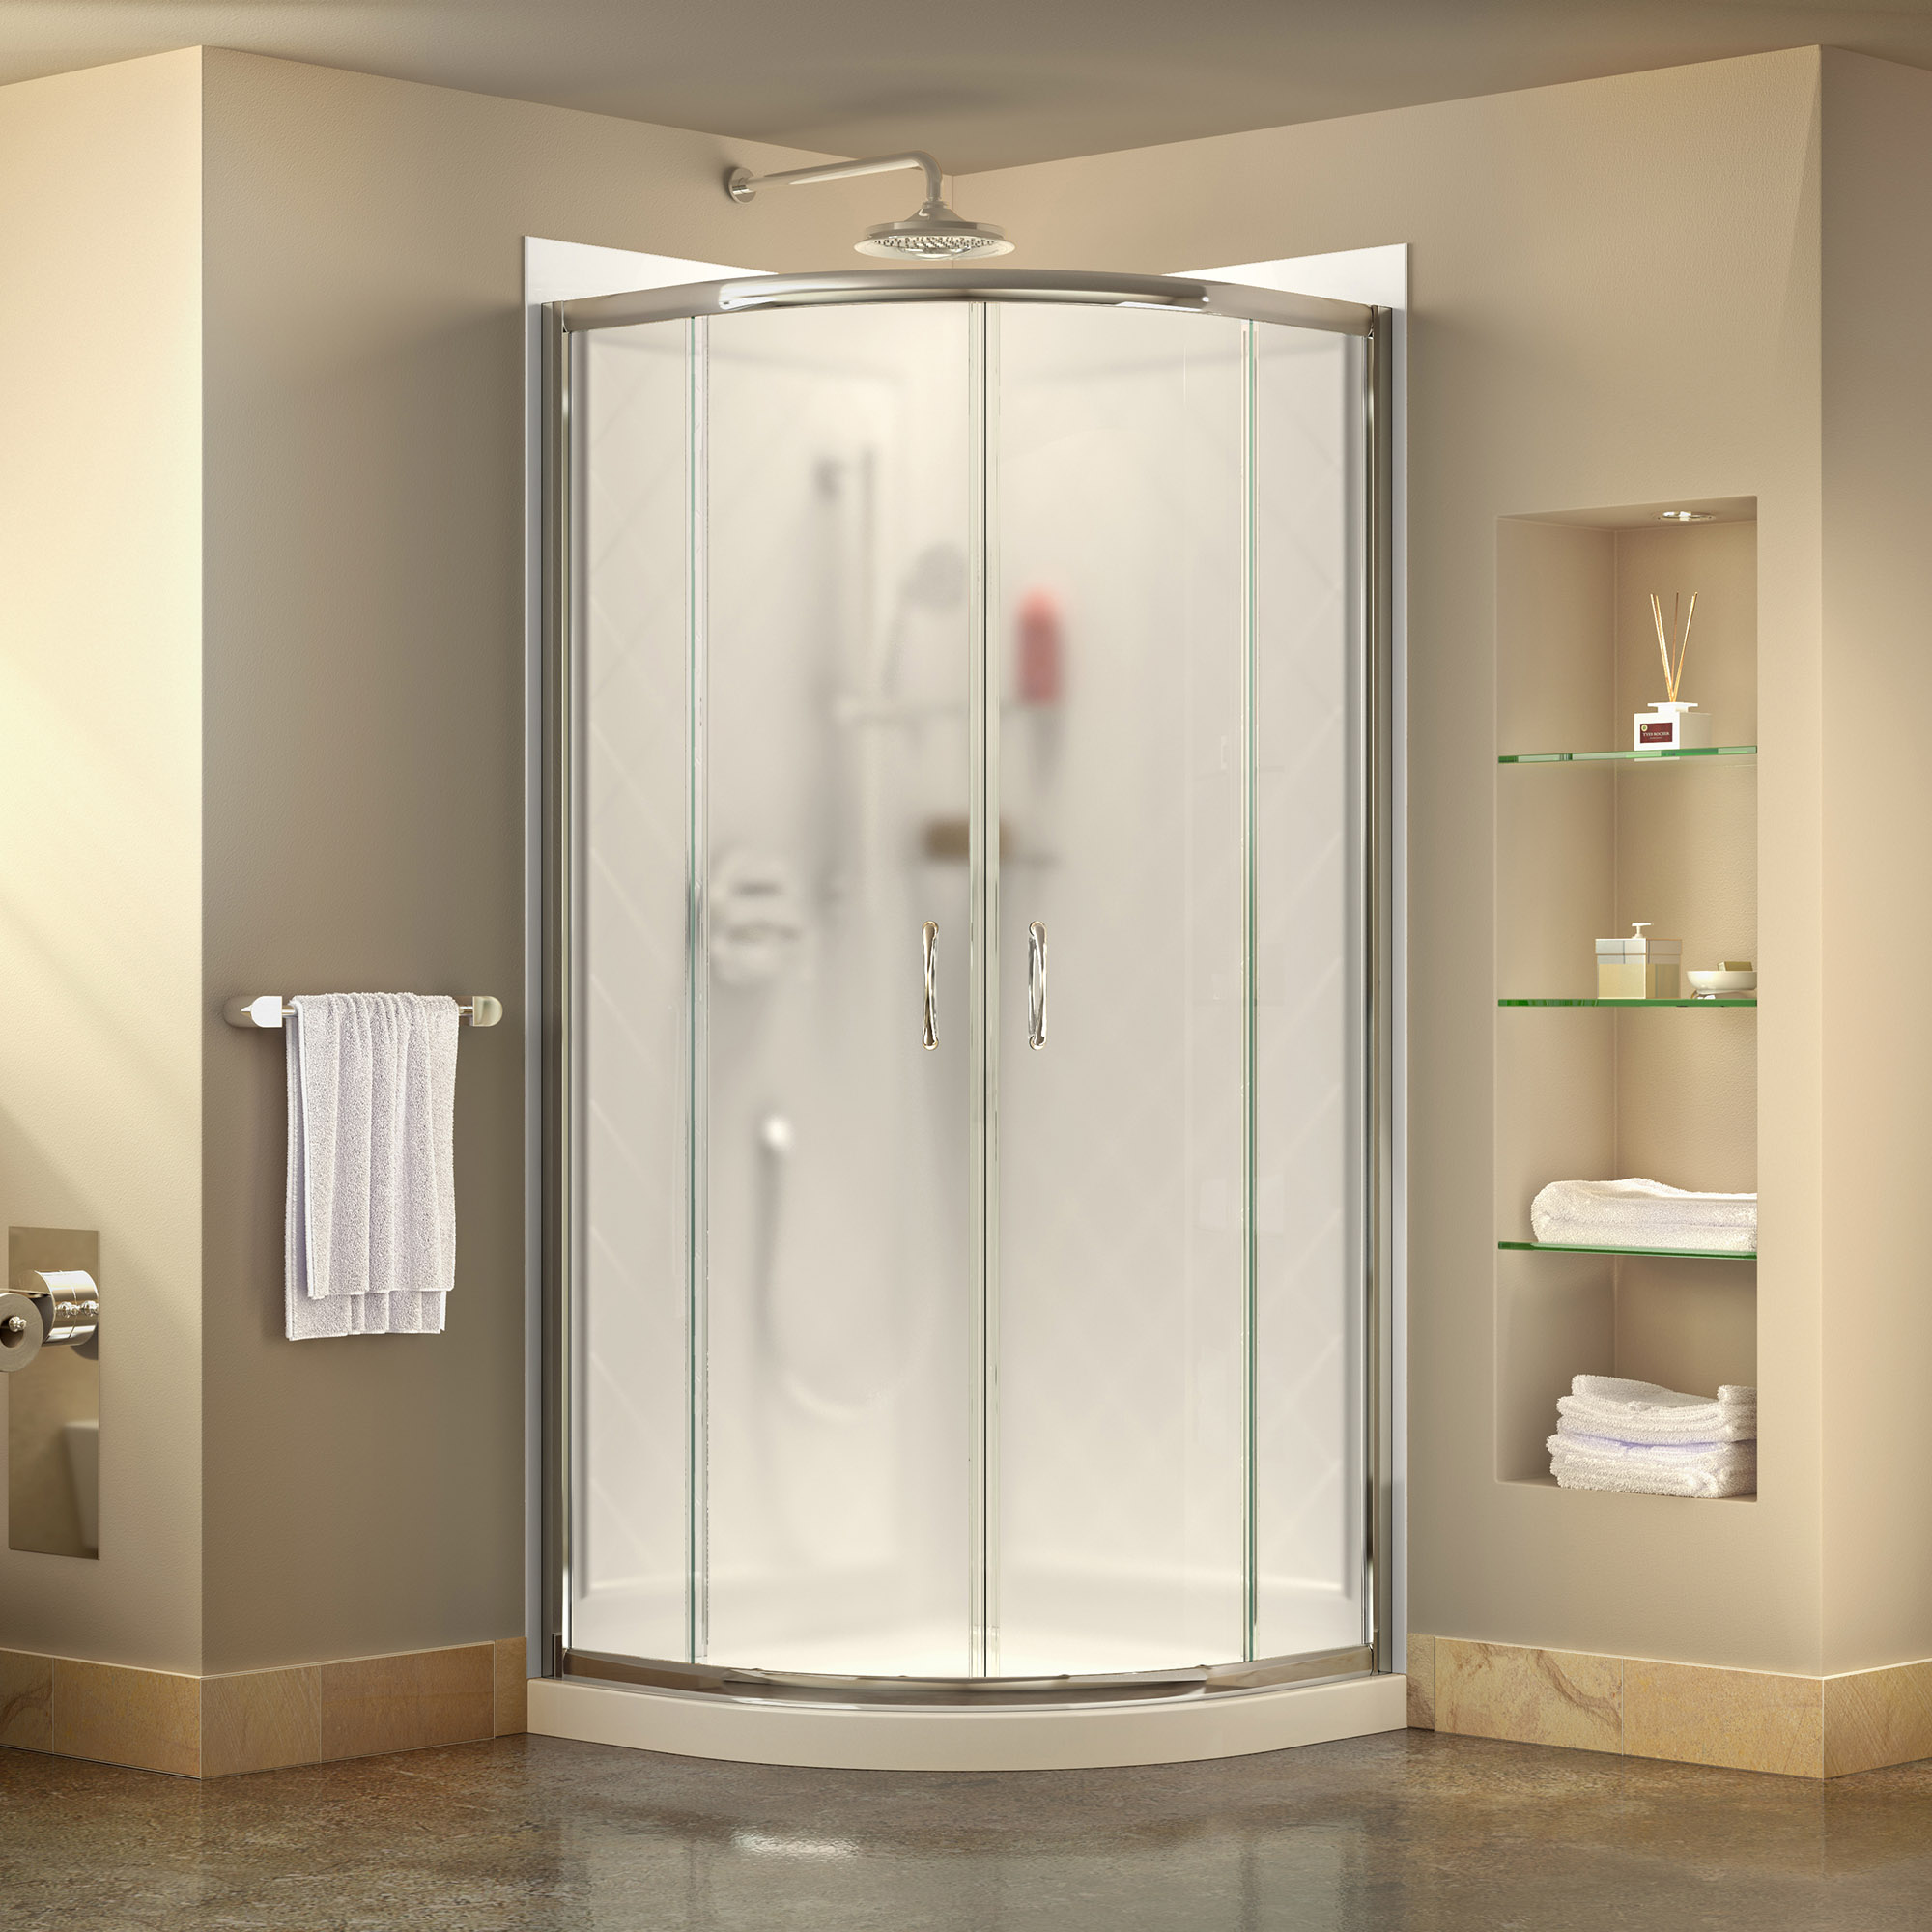 Dreamline Prime 36 In X 76 3 4 In Semi Frameless Frosted Glass Sliding Shower Enclosure In Chrome With White Base And Backwalls Walmart Com